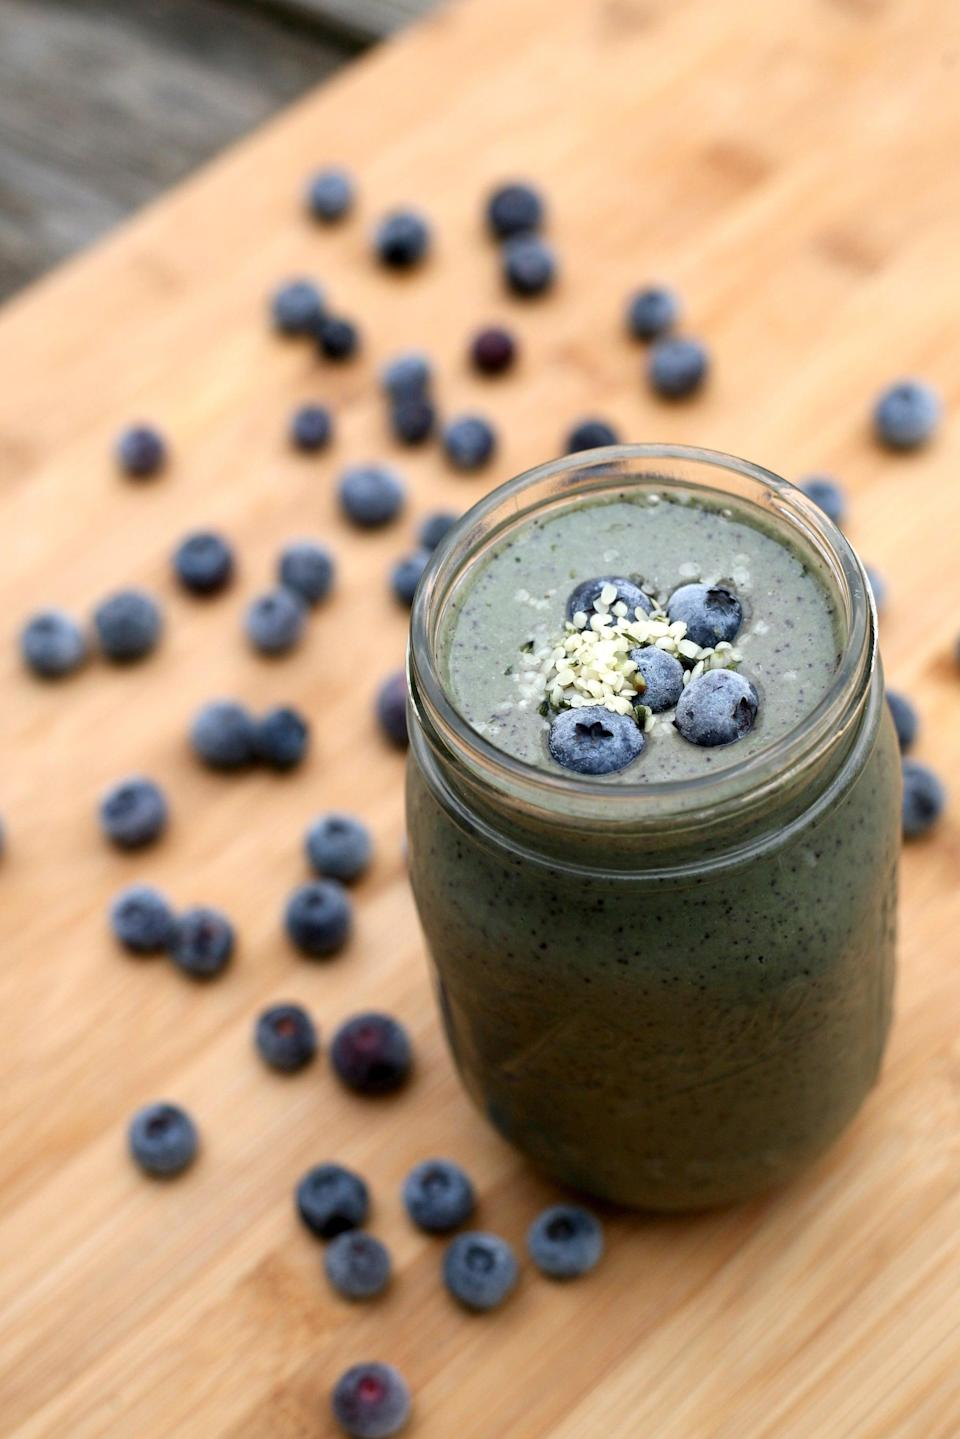 """<p>Since this smoothie is just five ingredients, it's incredibly easy to make and powered by hemp seeds.</p> <p><strong>Get the recipe:</strong> <a href=""""https://www.popsugar.com/fitness/Whole30-Smoothie-Recipe-43399859"""" class=""""link rapid-noclick-resp"""" rel=""""nofollow noopener"""" target=""""_blank"""" data-ylk=""""slk:banana blueberry hemp seed smoothie"""">banana blueberry hemp seed smoothie</a></p>"""